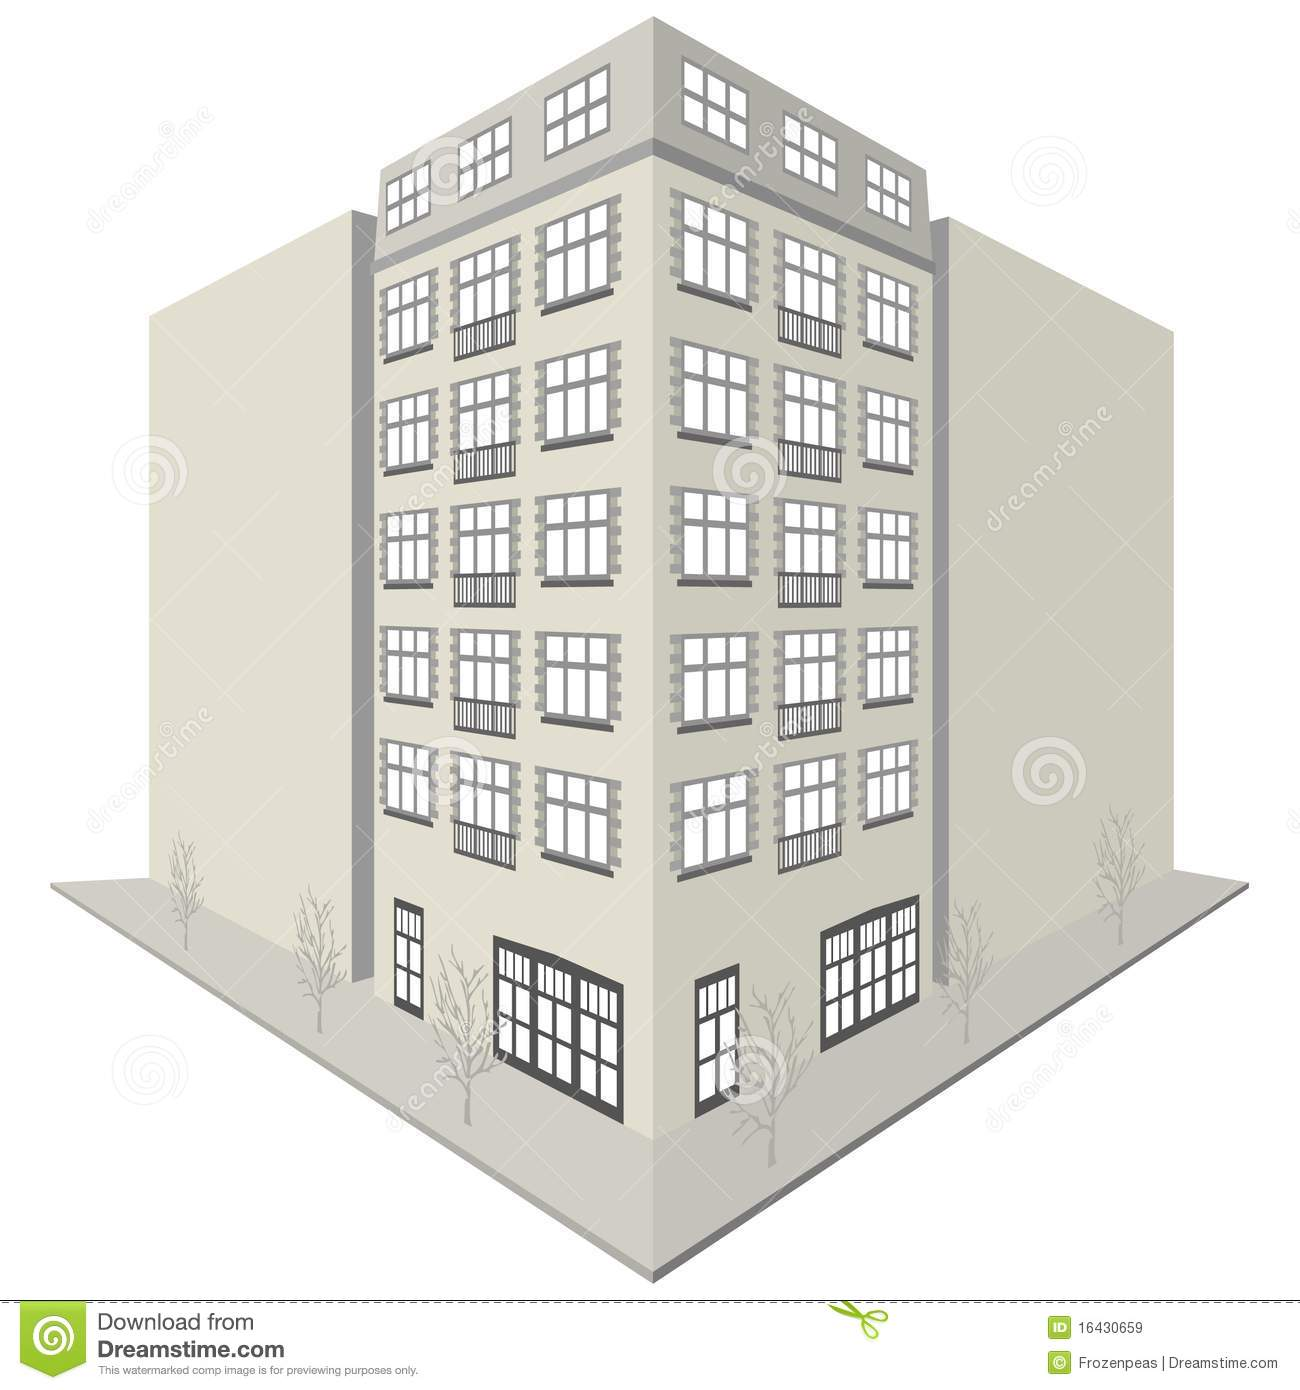 Clipart block of flats image free download Apartment Block Design Royalty Free Stock Images - Image: 16430659 image free download